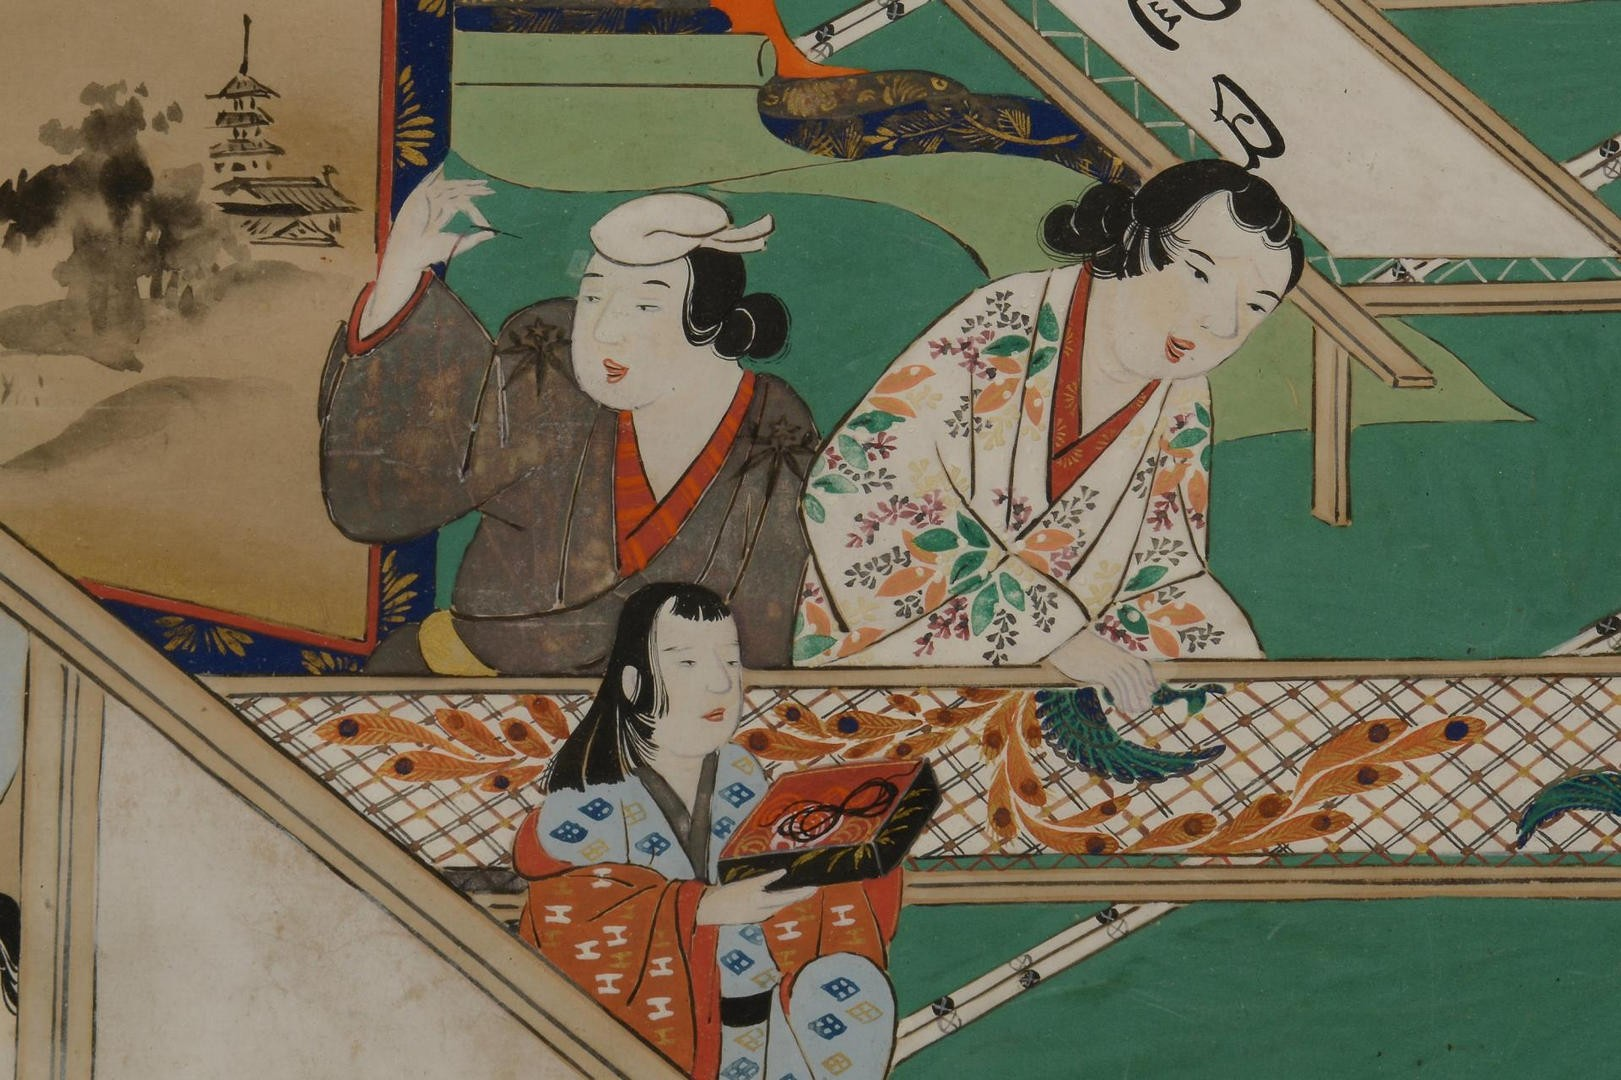 Lot 3594261: Asian Painting of Obi Makers